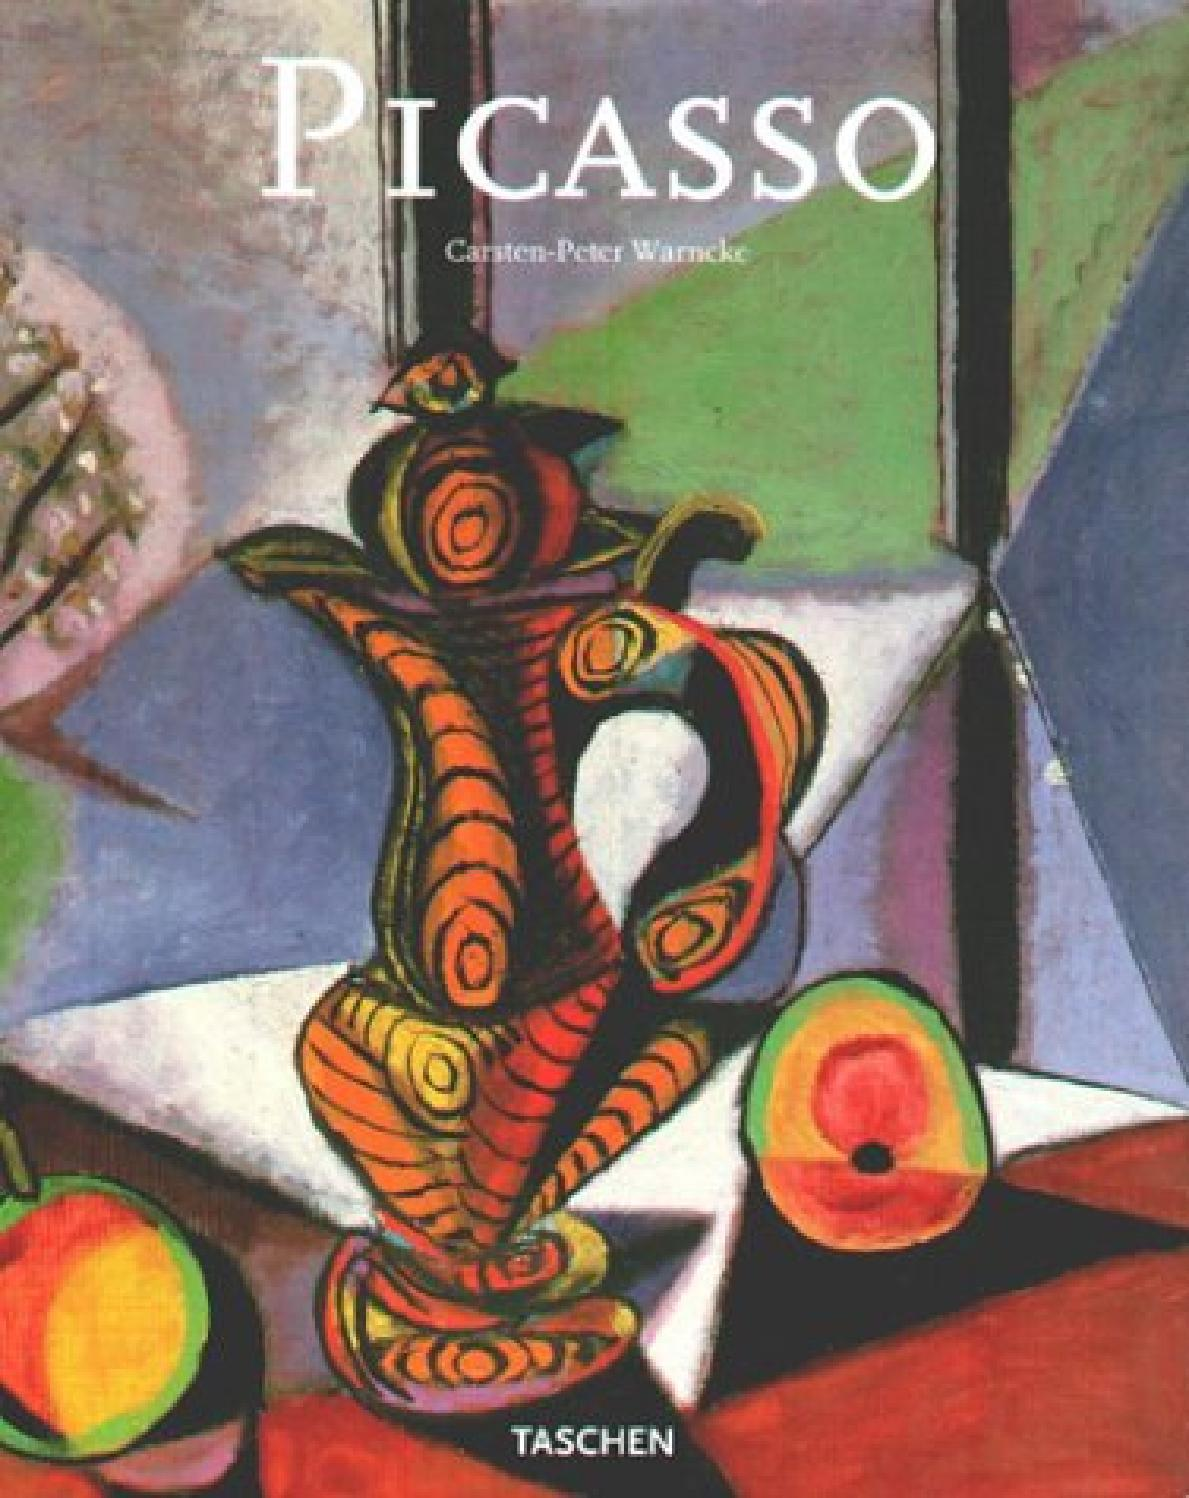 Pablo picasso 1881 1973 (taschen art ebook) by Pipo Martins - issuu